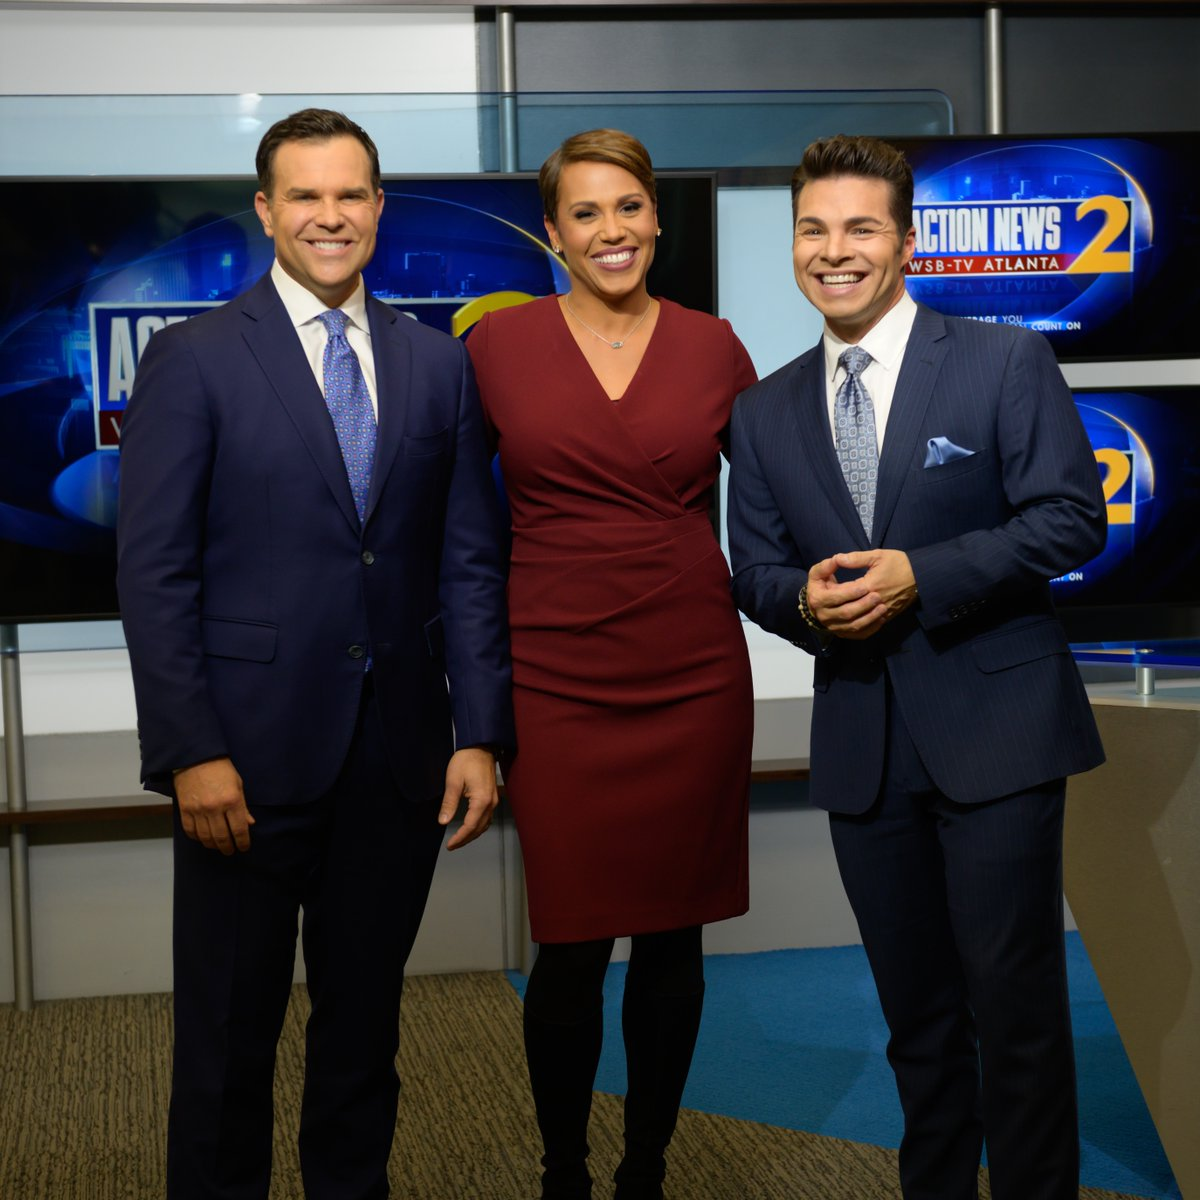 Wsb Tv On Twitter We Re Thrilled To Welcome Jorge Estevez To Atlanta And Channel 2 You Can Catch Him With Jovitamoore At 5 And 11 And Find Justinfarmerwsb At 4 And 6